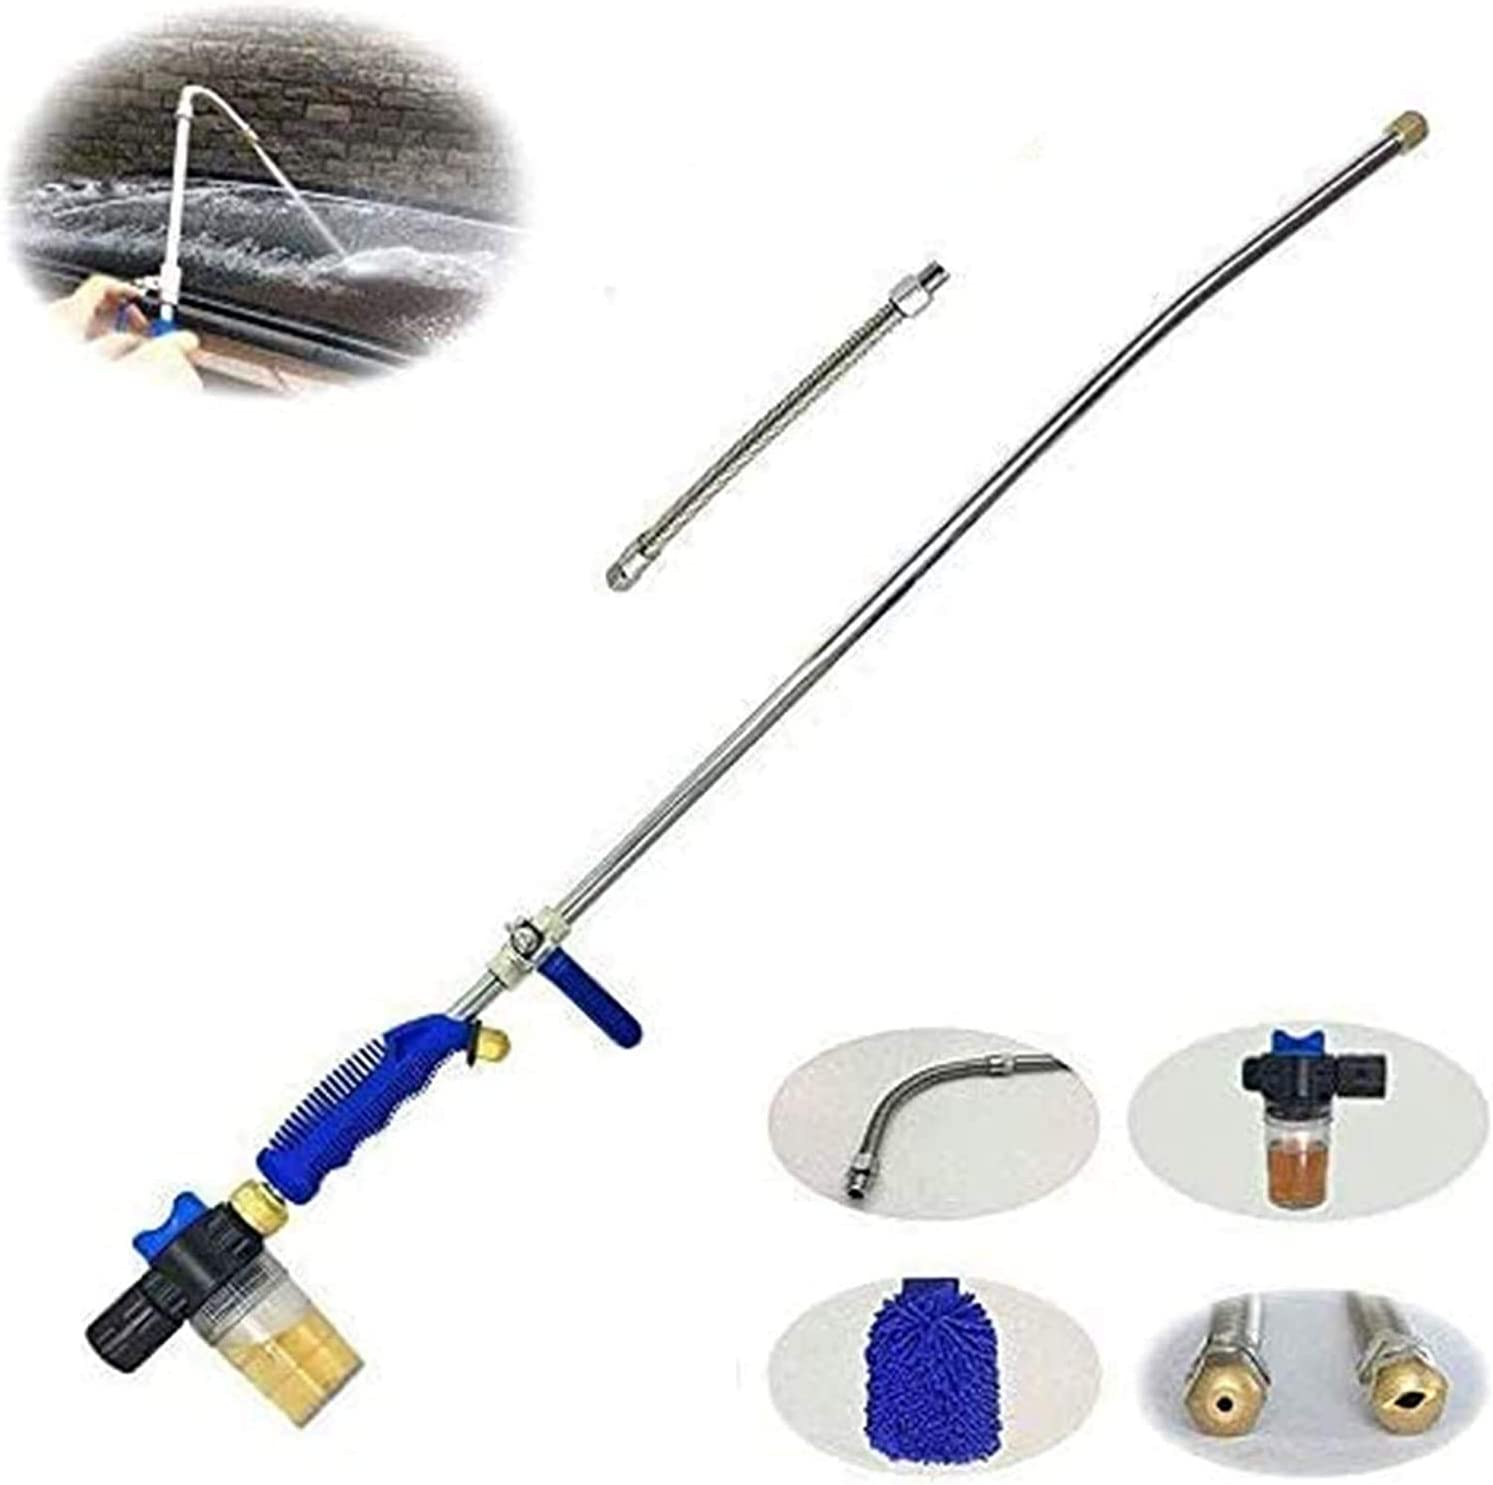 Hydro Deep Jet Power Washer Wand - 39'' Long Extendable High Pressure Garden Sprayer Attachment, Water Hose Nozzle,Flexible Glass Cleaning Tool, Foam Cannon Car Window Washer, 2 Tips